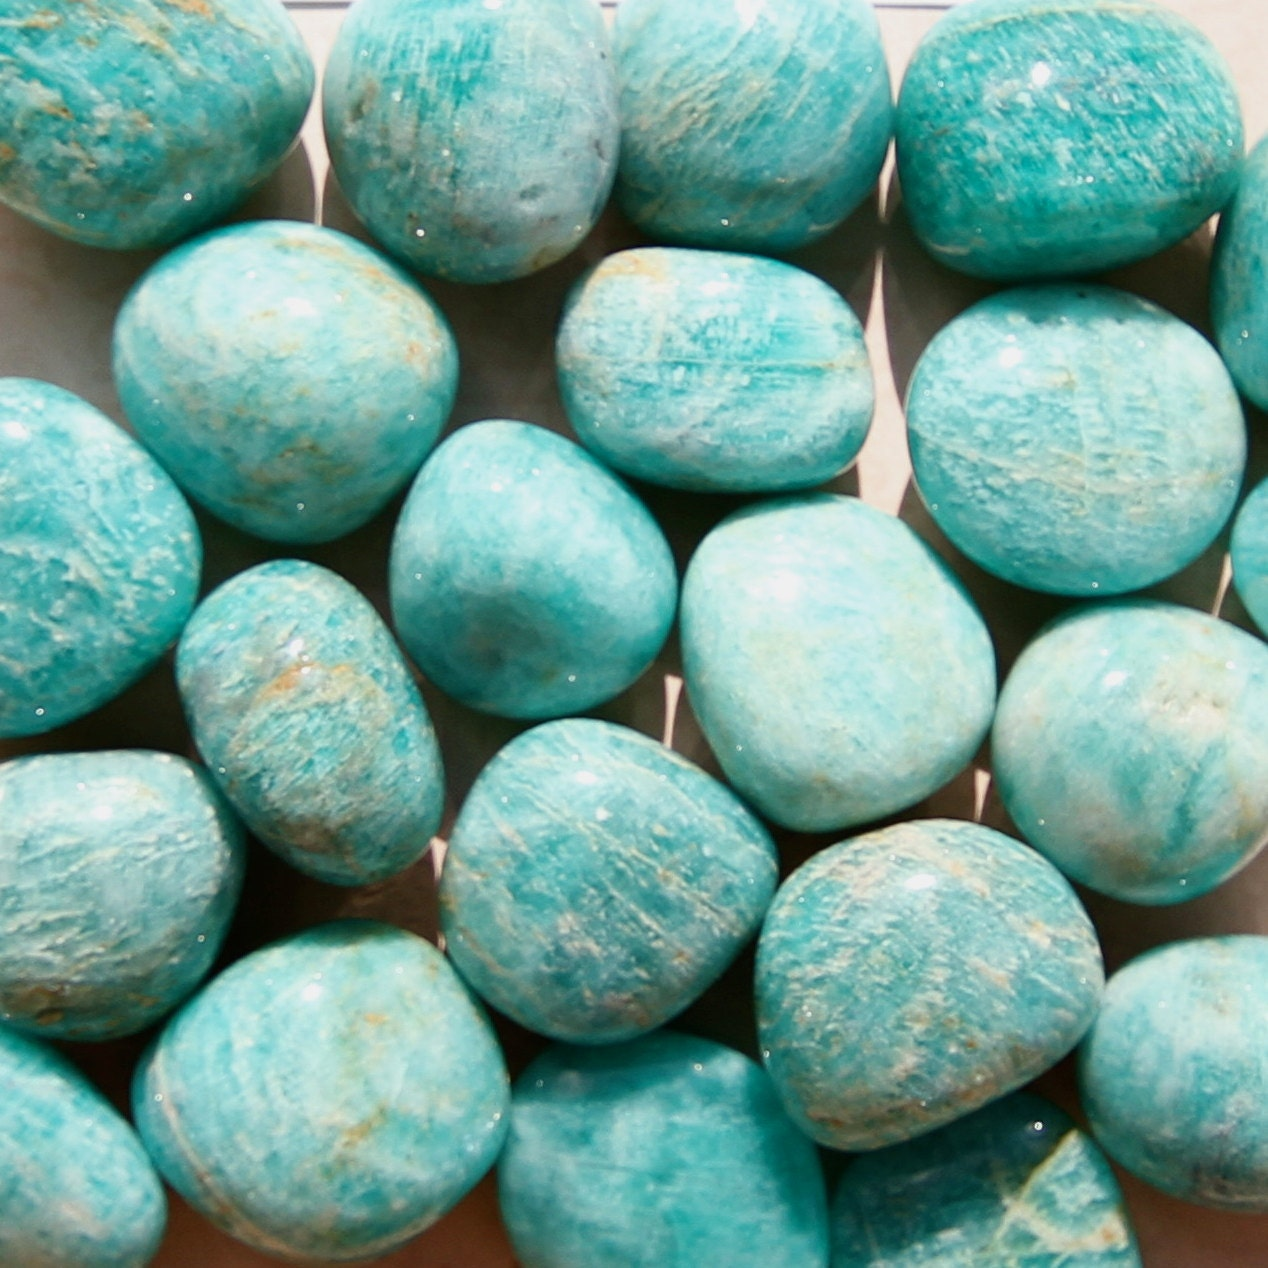 Healing Necklace Stones Crystal Of Look No Wires Learning About Electricity Without Jonathan39s Amazonite Crystals Grade A Natural Tumbled Polished Gemstone For Jewelry Supplies